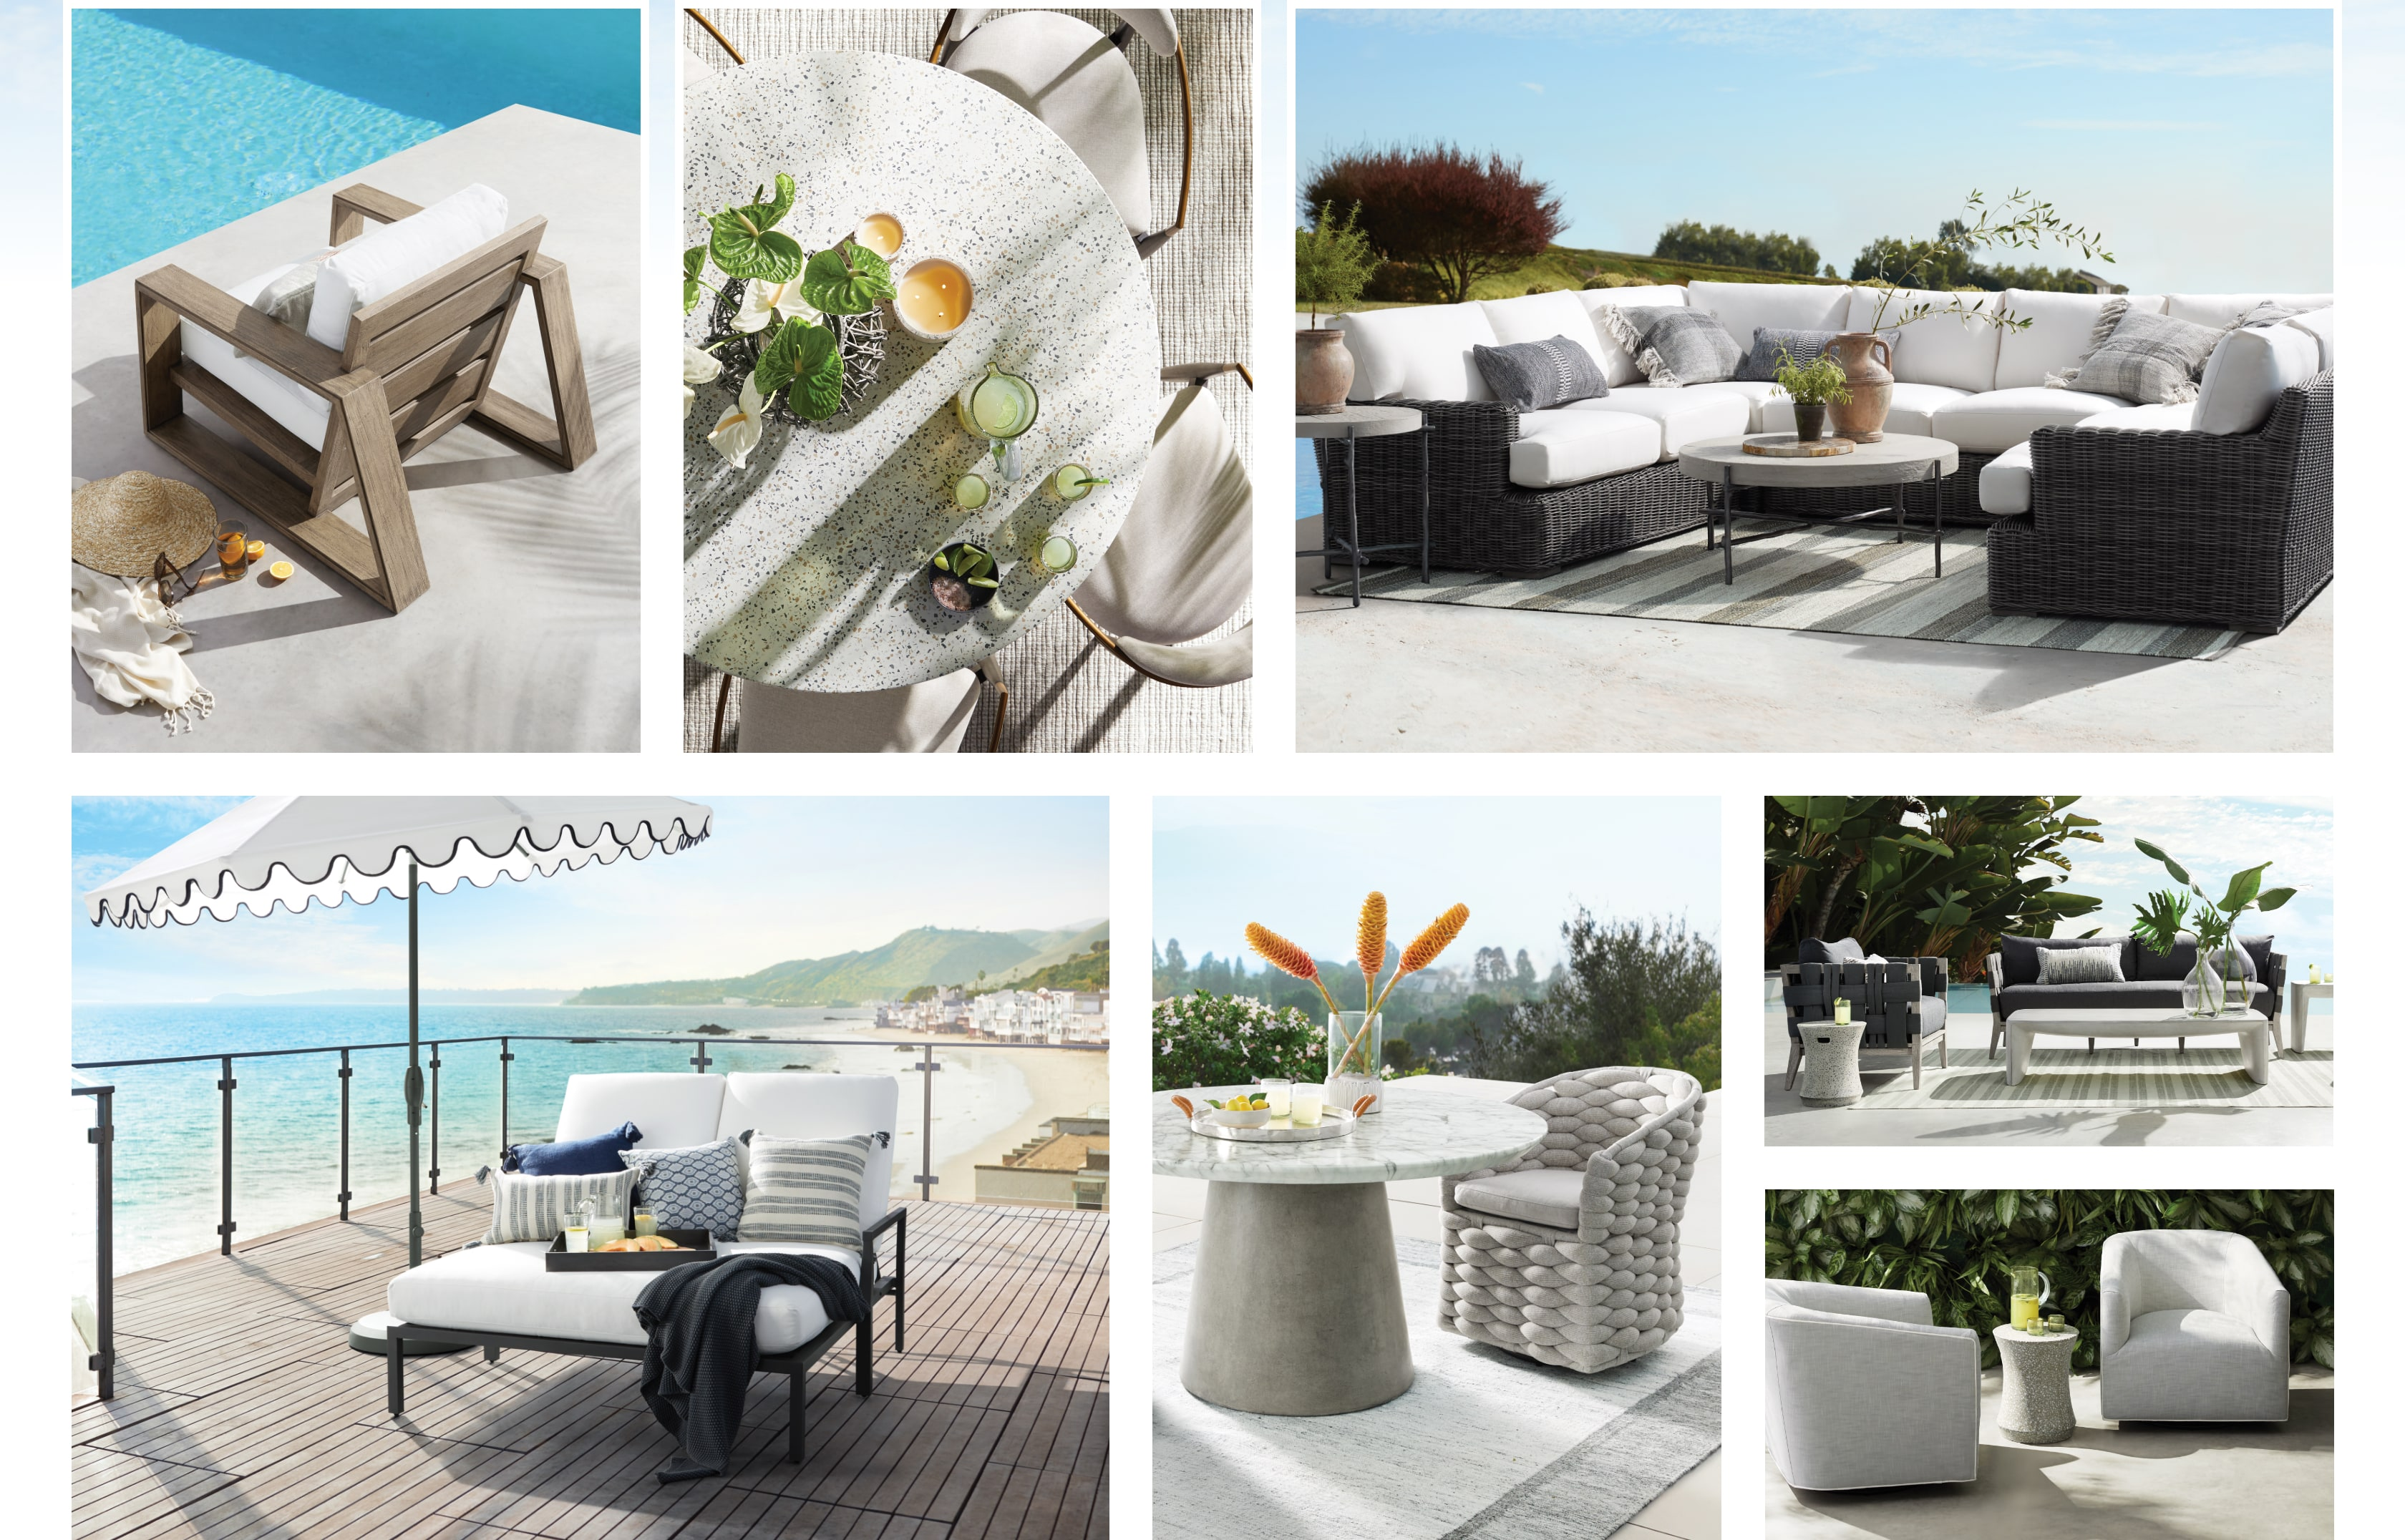 Shop the Arhaus 2021 Outdoor Collection